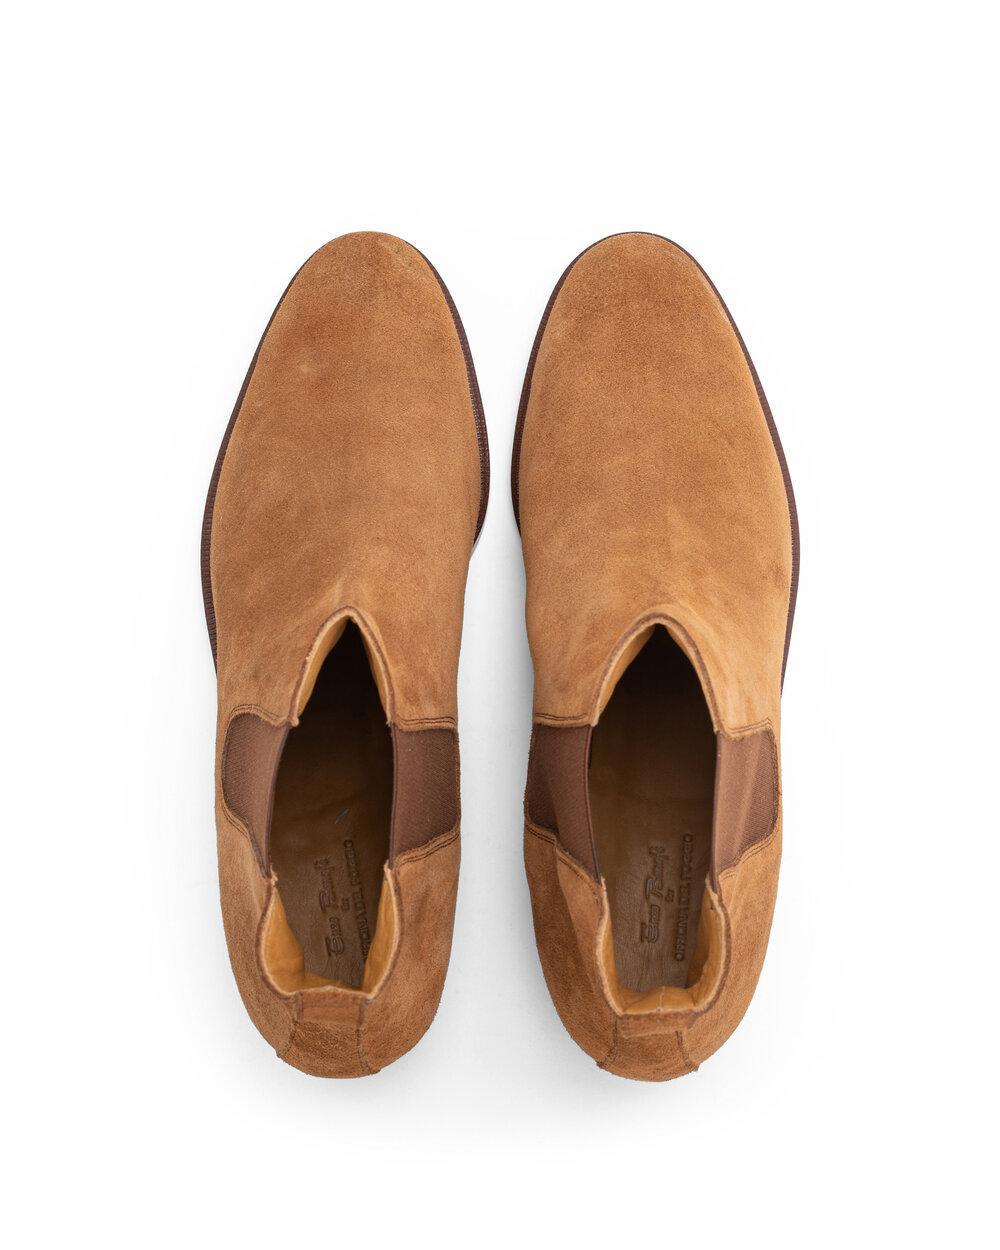 ODPEssentials Classic Chelsea Boot - Tan Suede 3